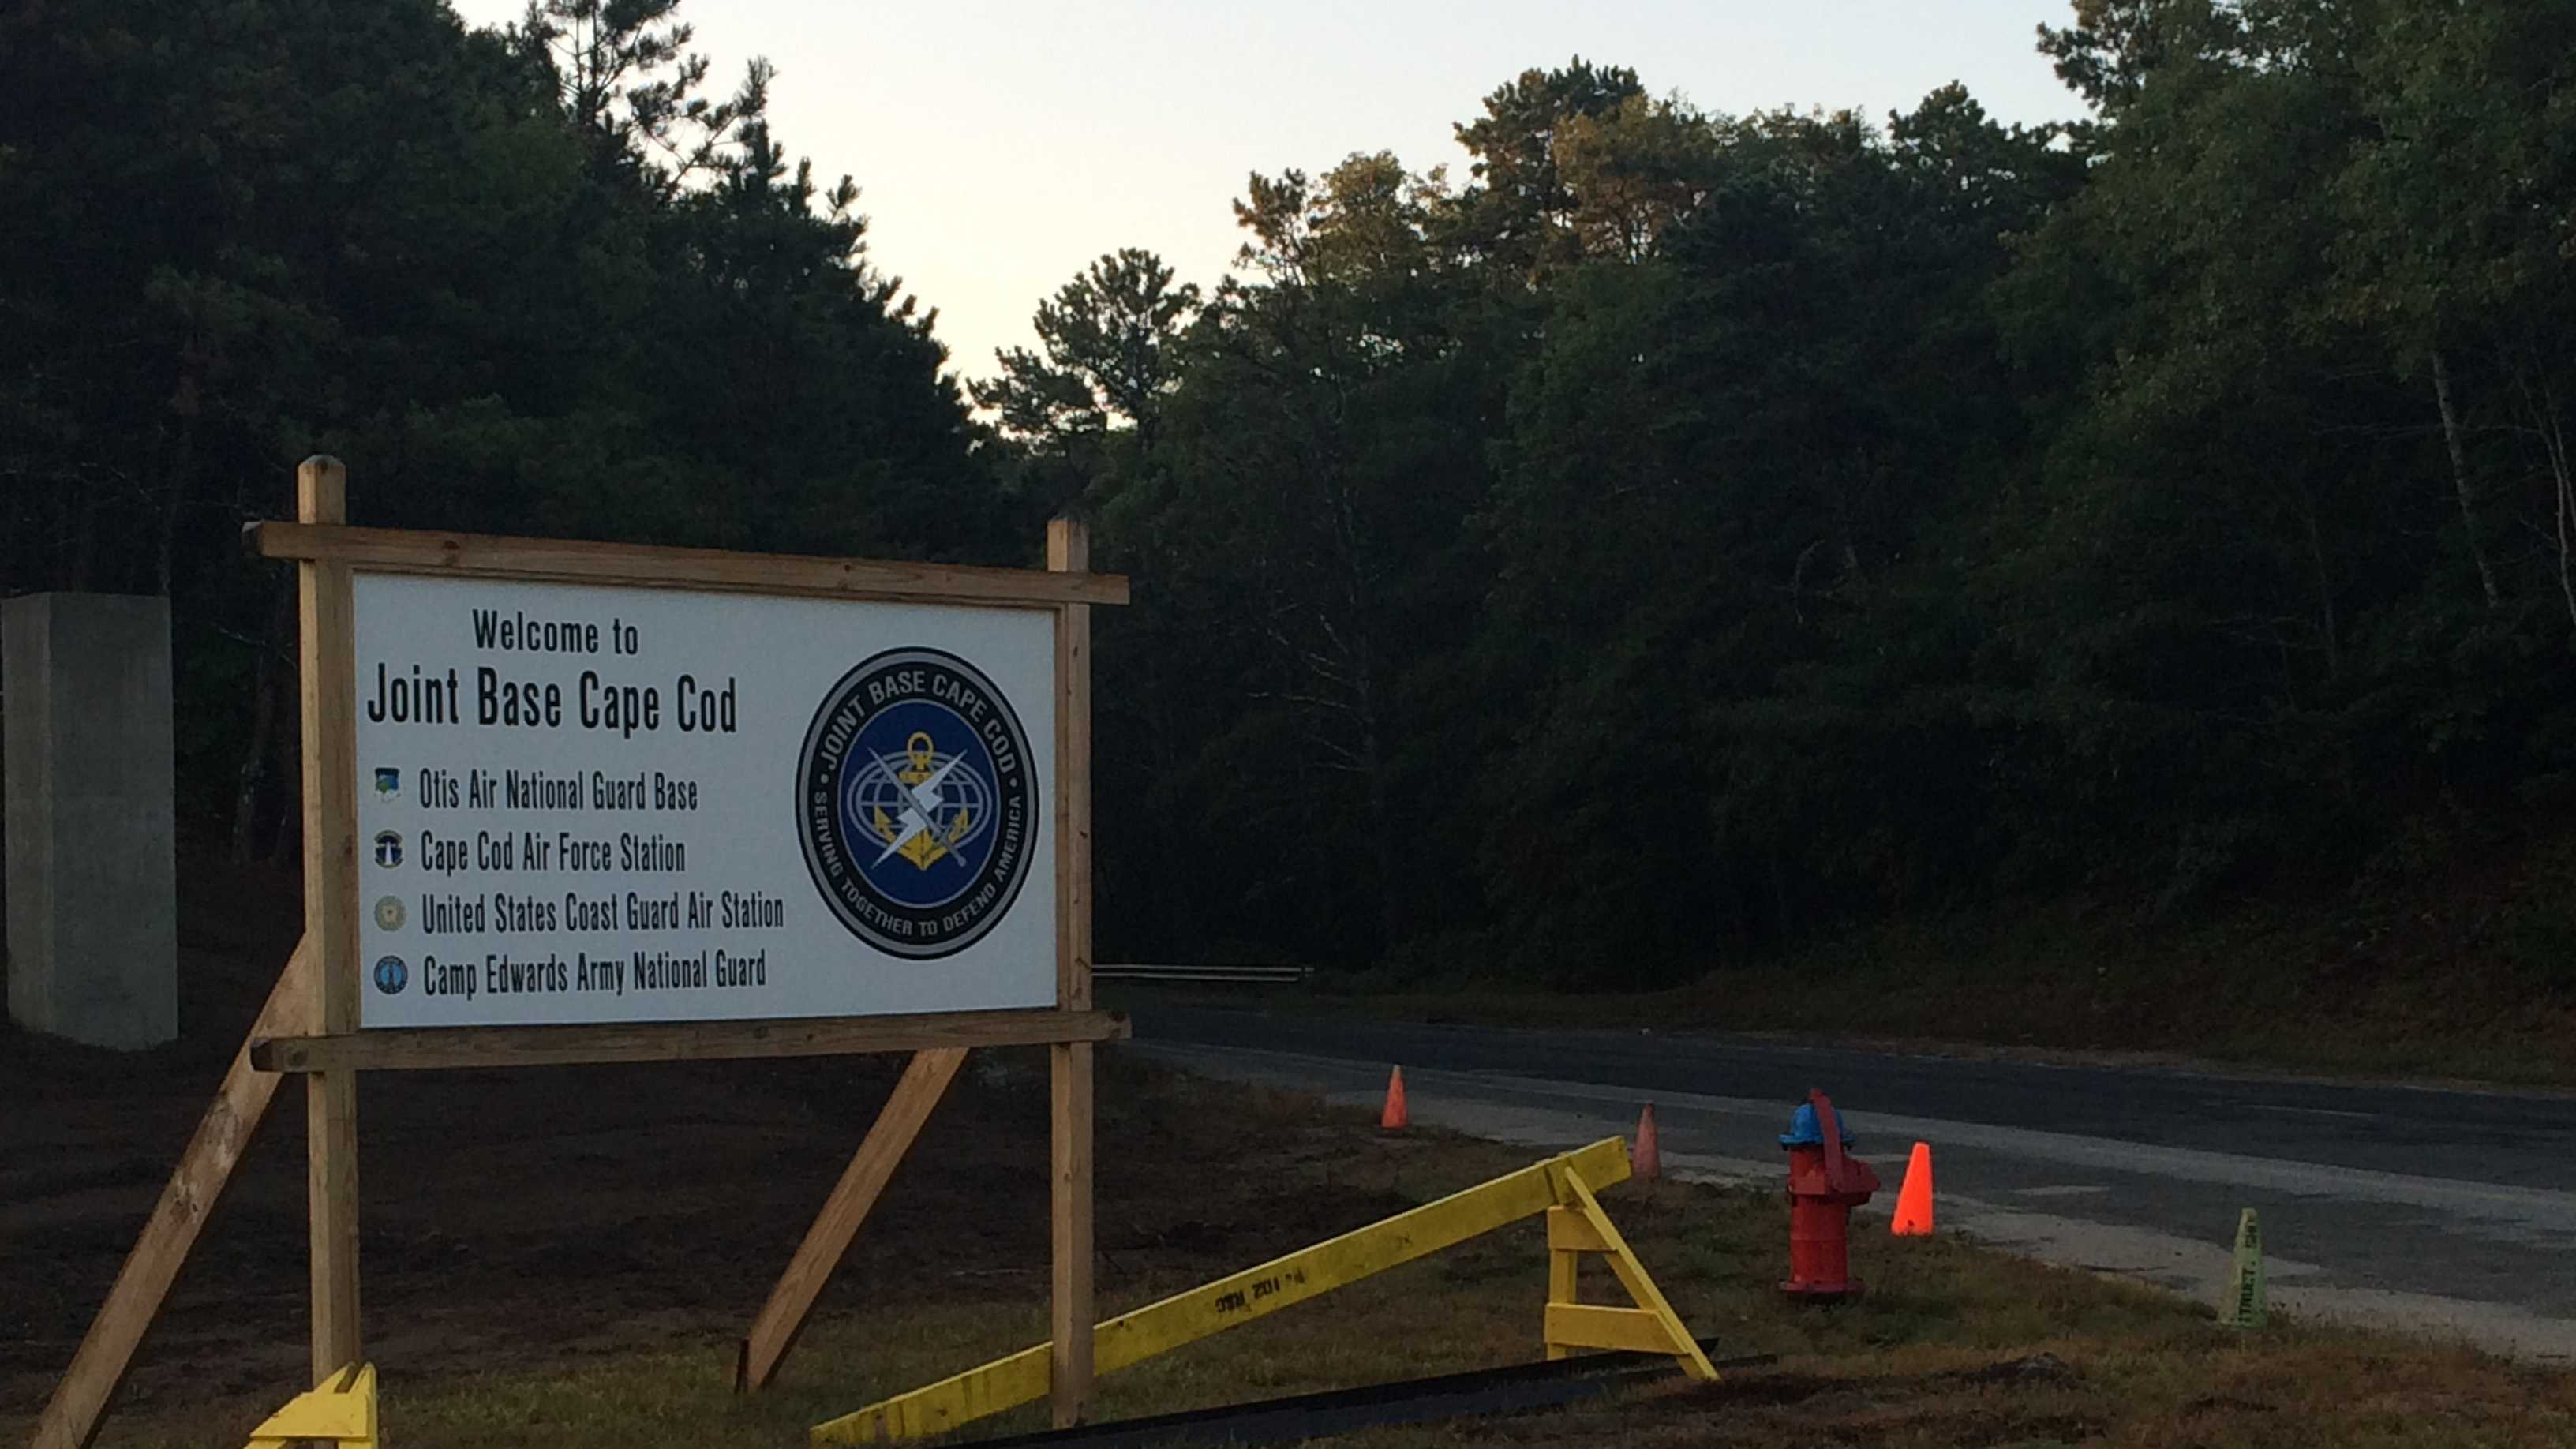 Joint Base Cape Cod Sign 9.22